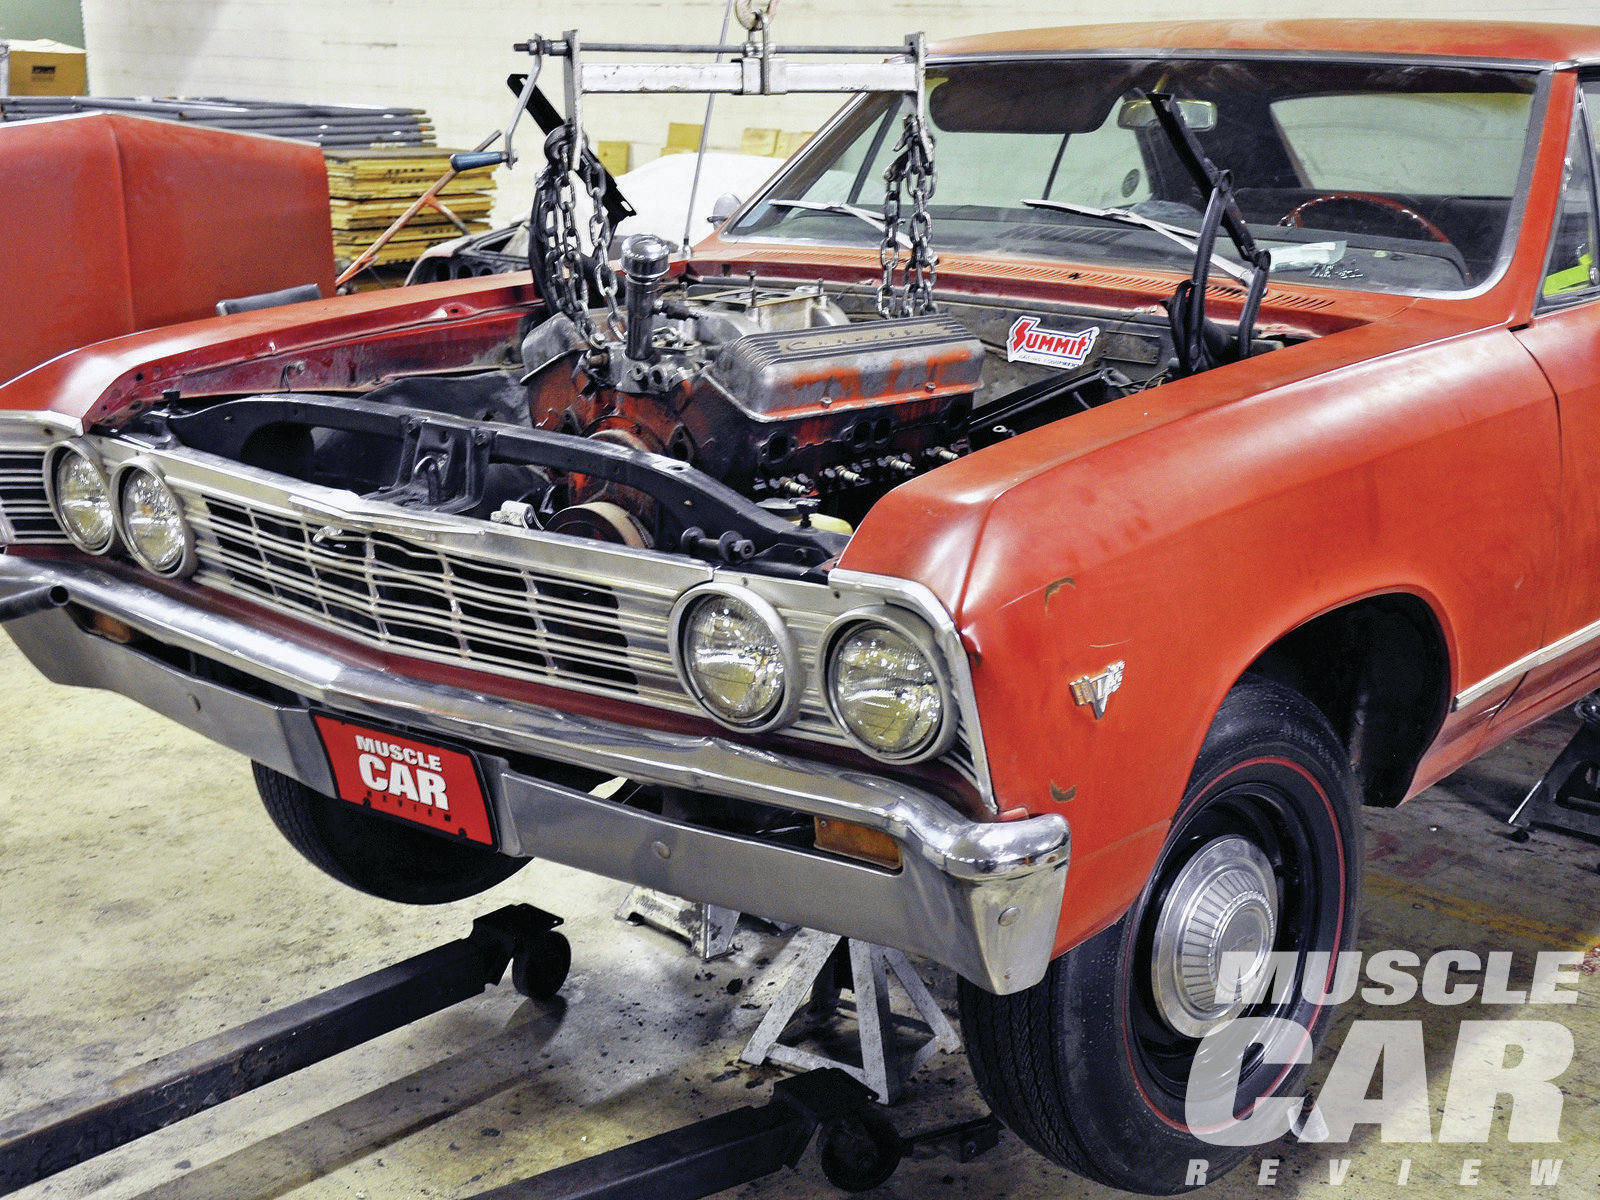 The 327 is lowered into the engine compartment, carefully avoiding contact with the radiator support, the firewall, or the wheelwells. Frankly, the small-block engine provides plenty of margin for error during installation, since the Malibu's engine bay was designed to swallow much bigger motors.